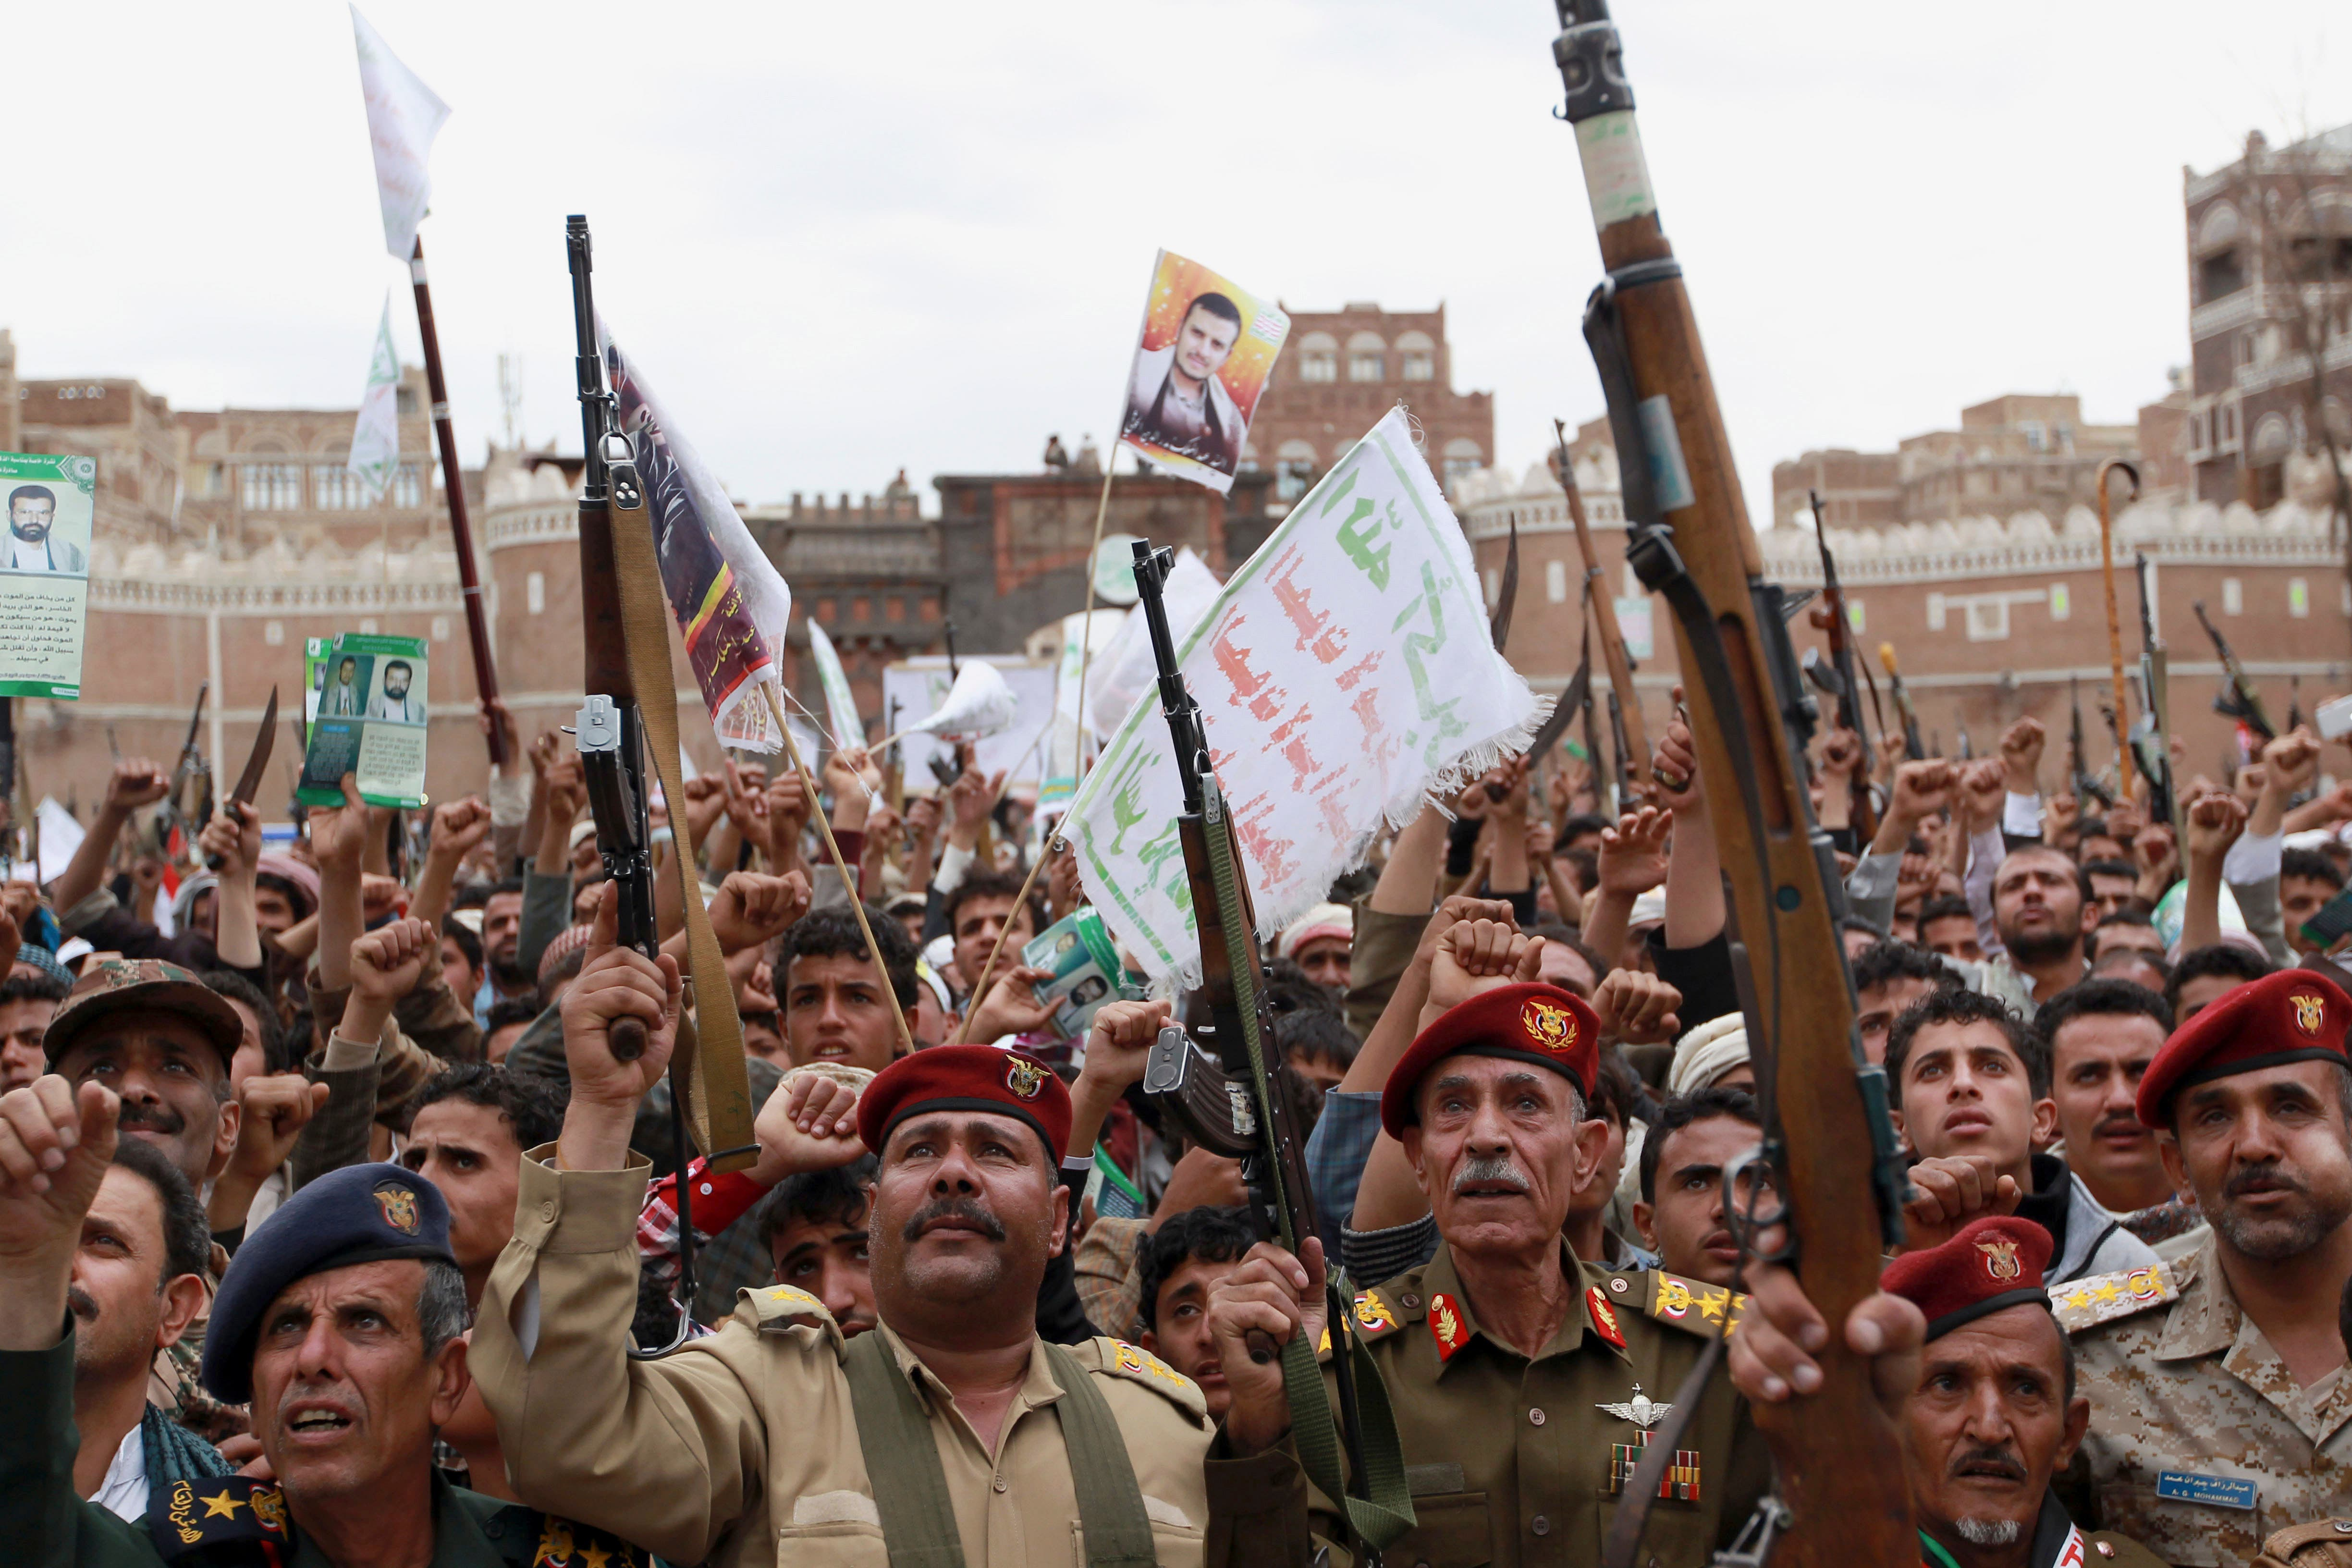 Houthis hold up their weapons to protest against Saudi-led airstrikes, during a rally in Sanaa, Yemen, Thursday, March 26, 2015. (AP)